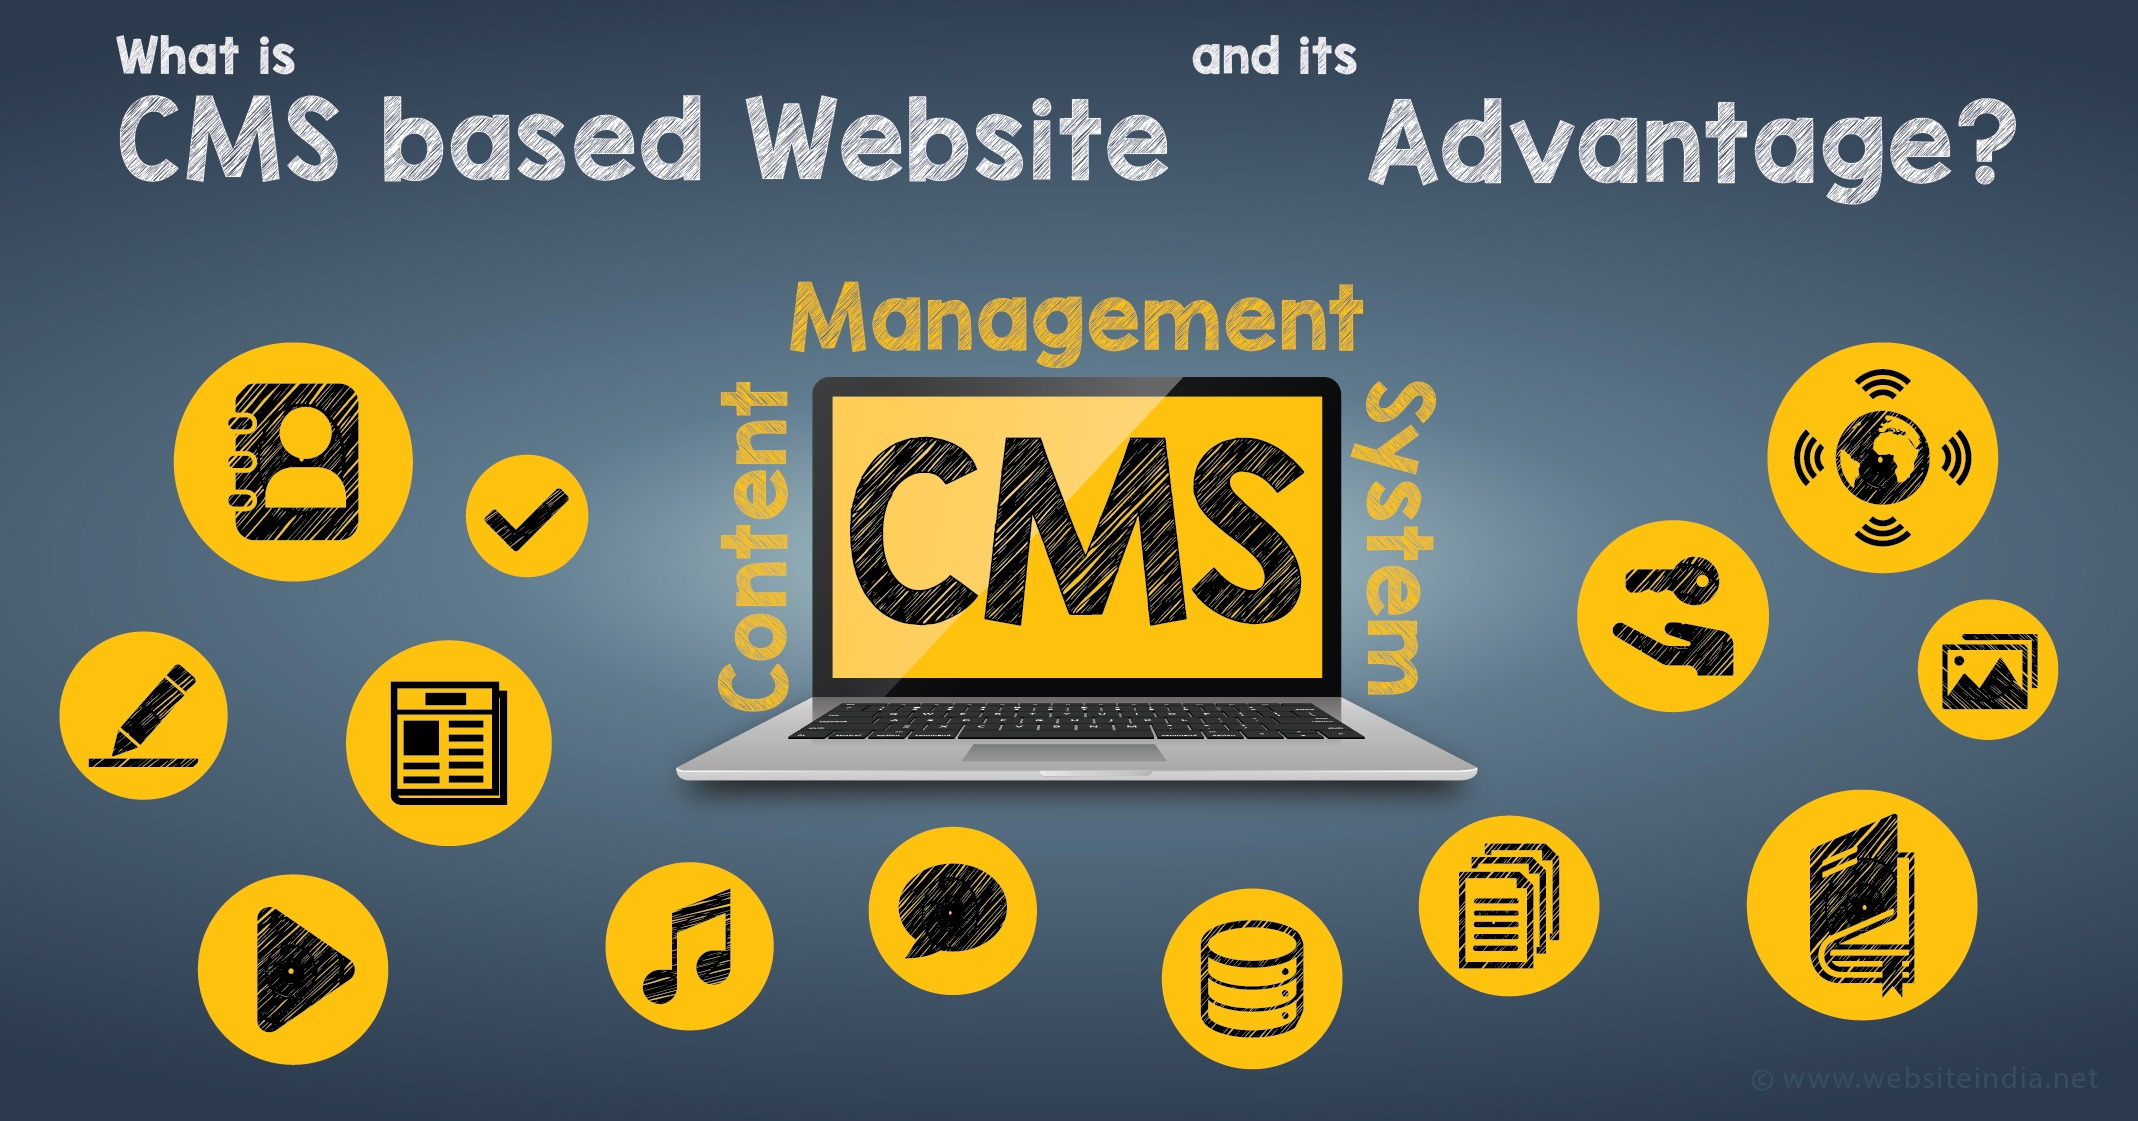 What is CMS based Website and its Advantage